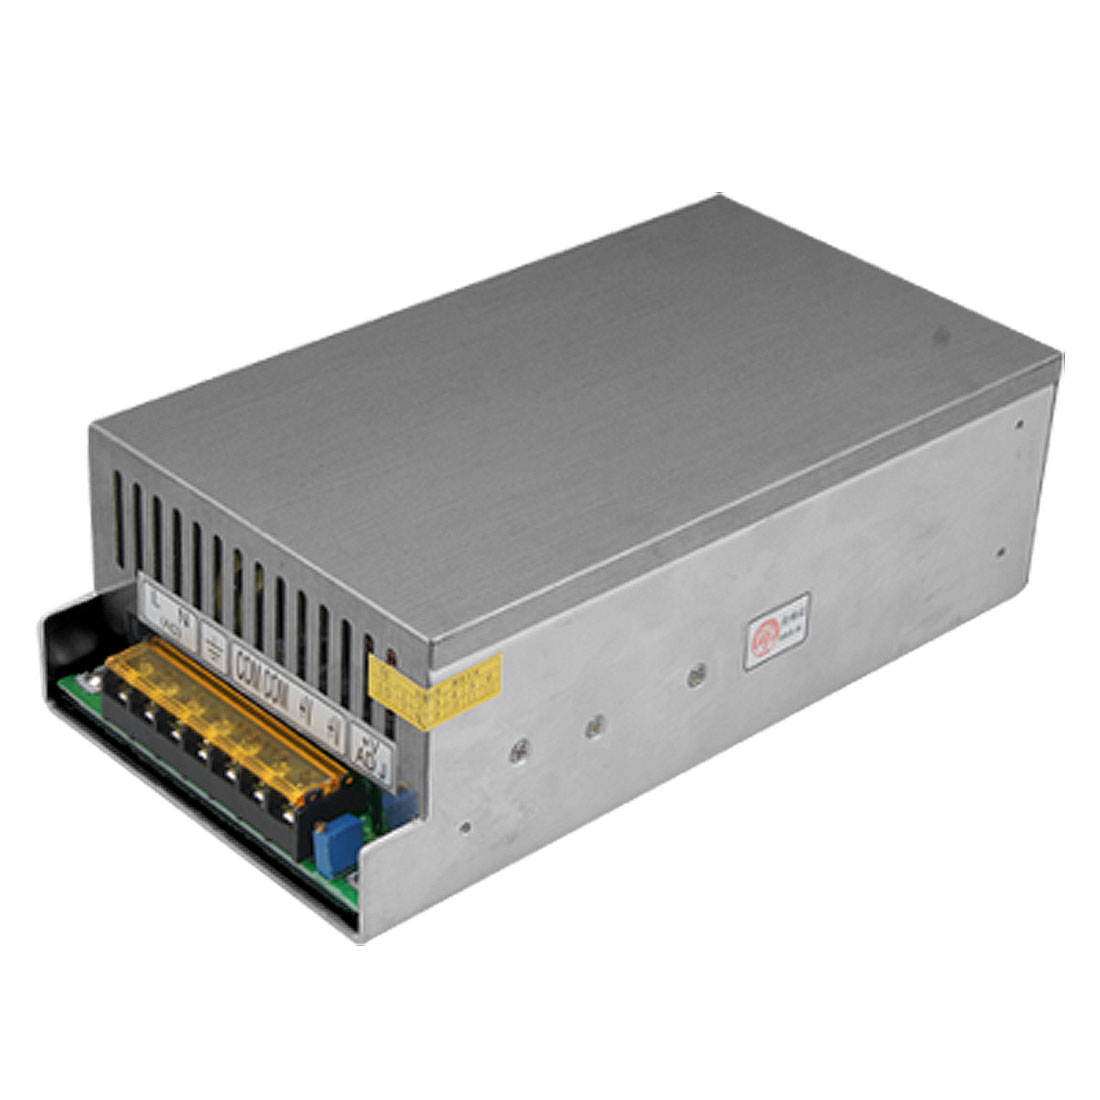 AC 110/220V DC 12V 40A 480W Regulated Switching Power Supply Driver for LED Strip Light